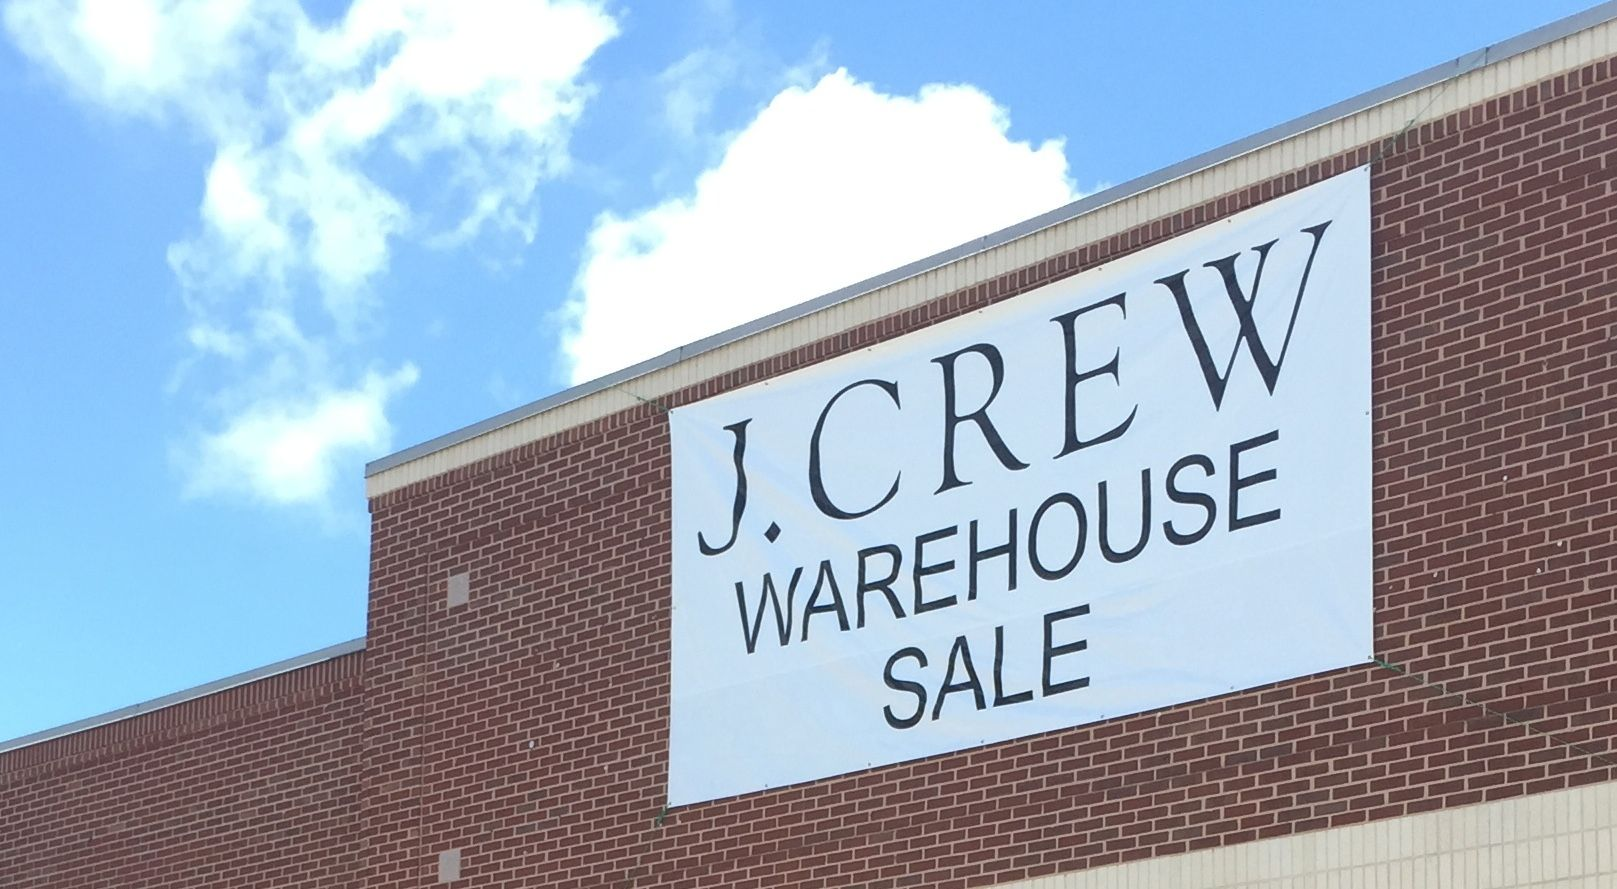 J.Crew warehouse sale is back in Lynchburg this weekend | Blogs ...